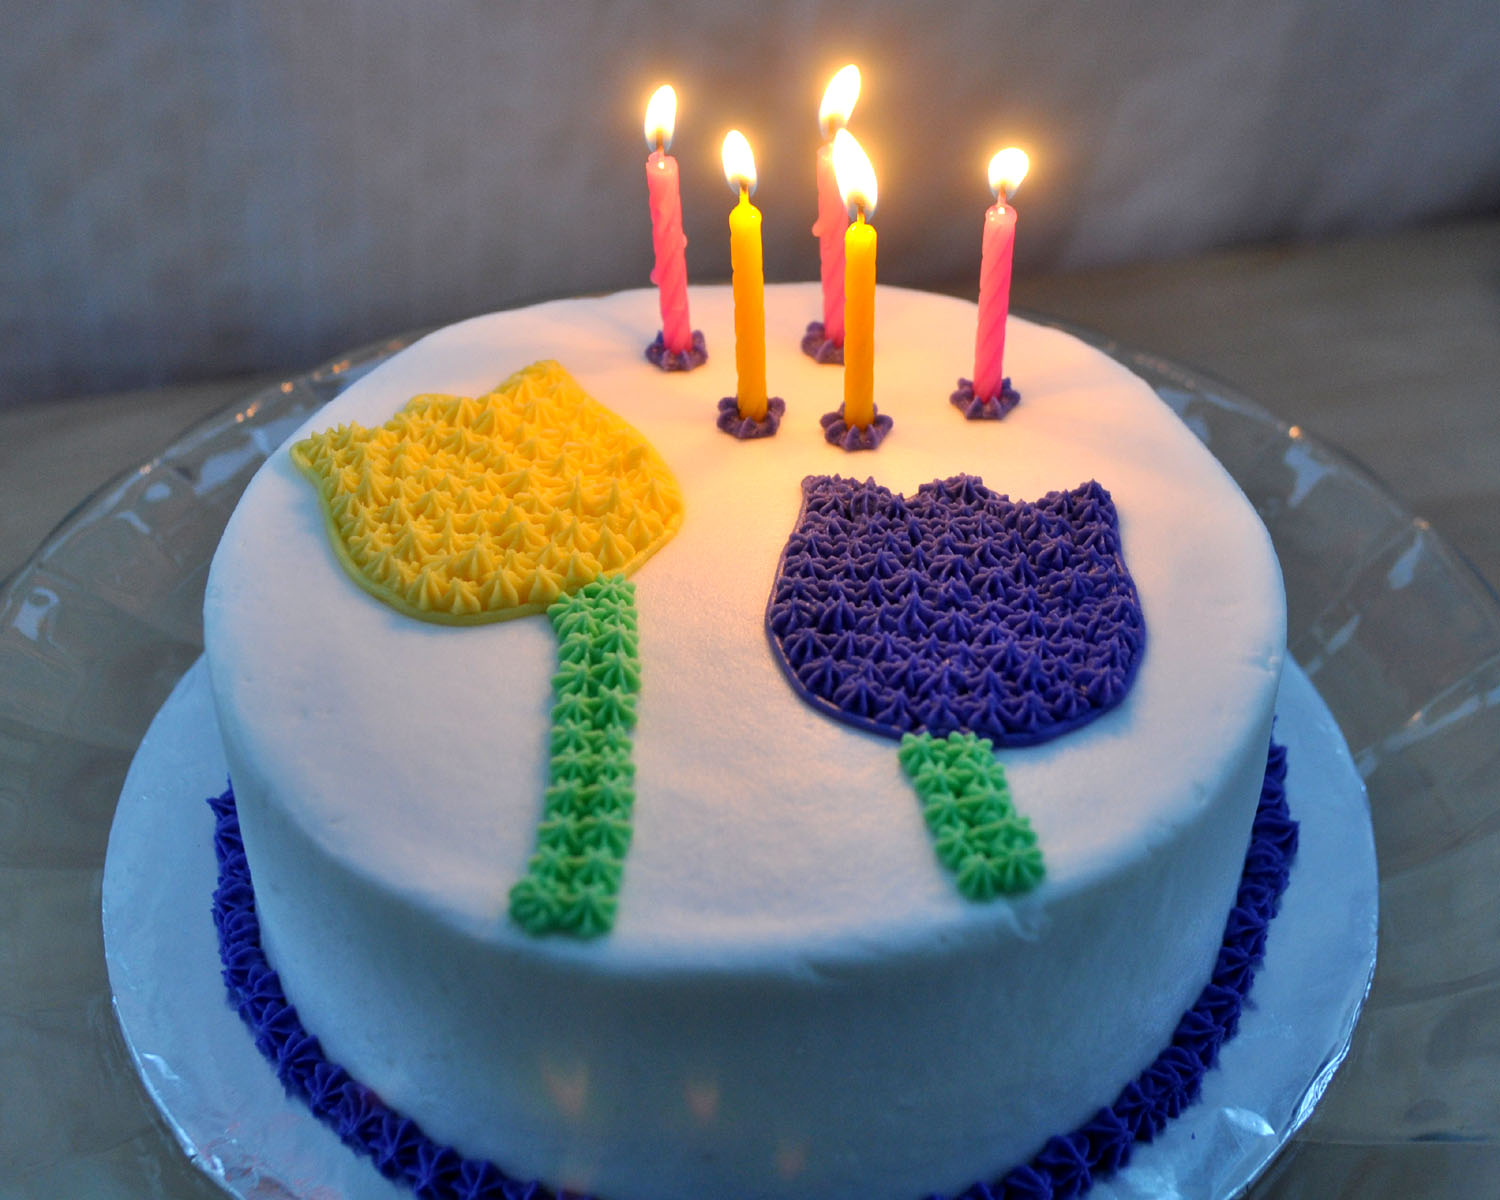 Simple Birthday Cake Decorating Ideas Home Simple Birthday Cake